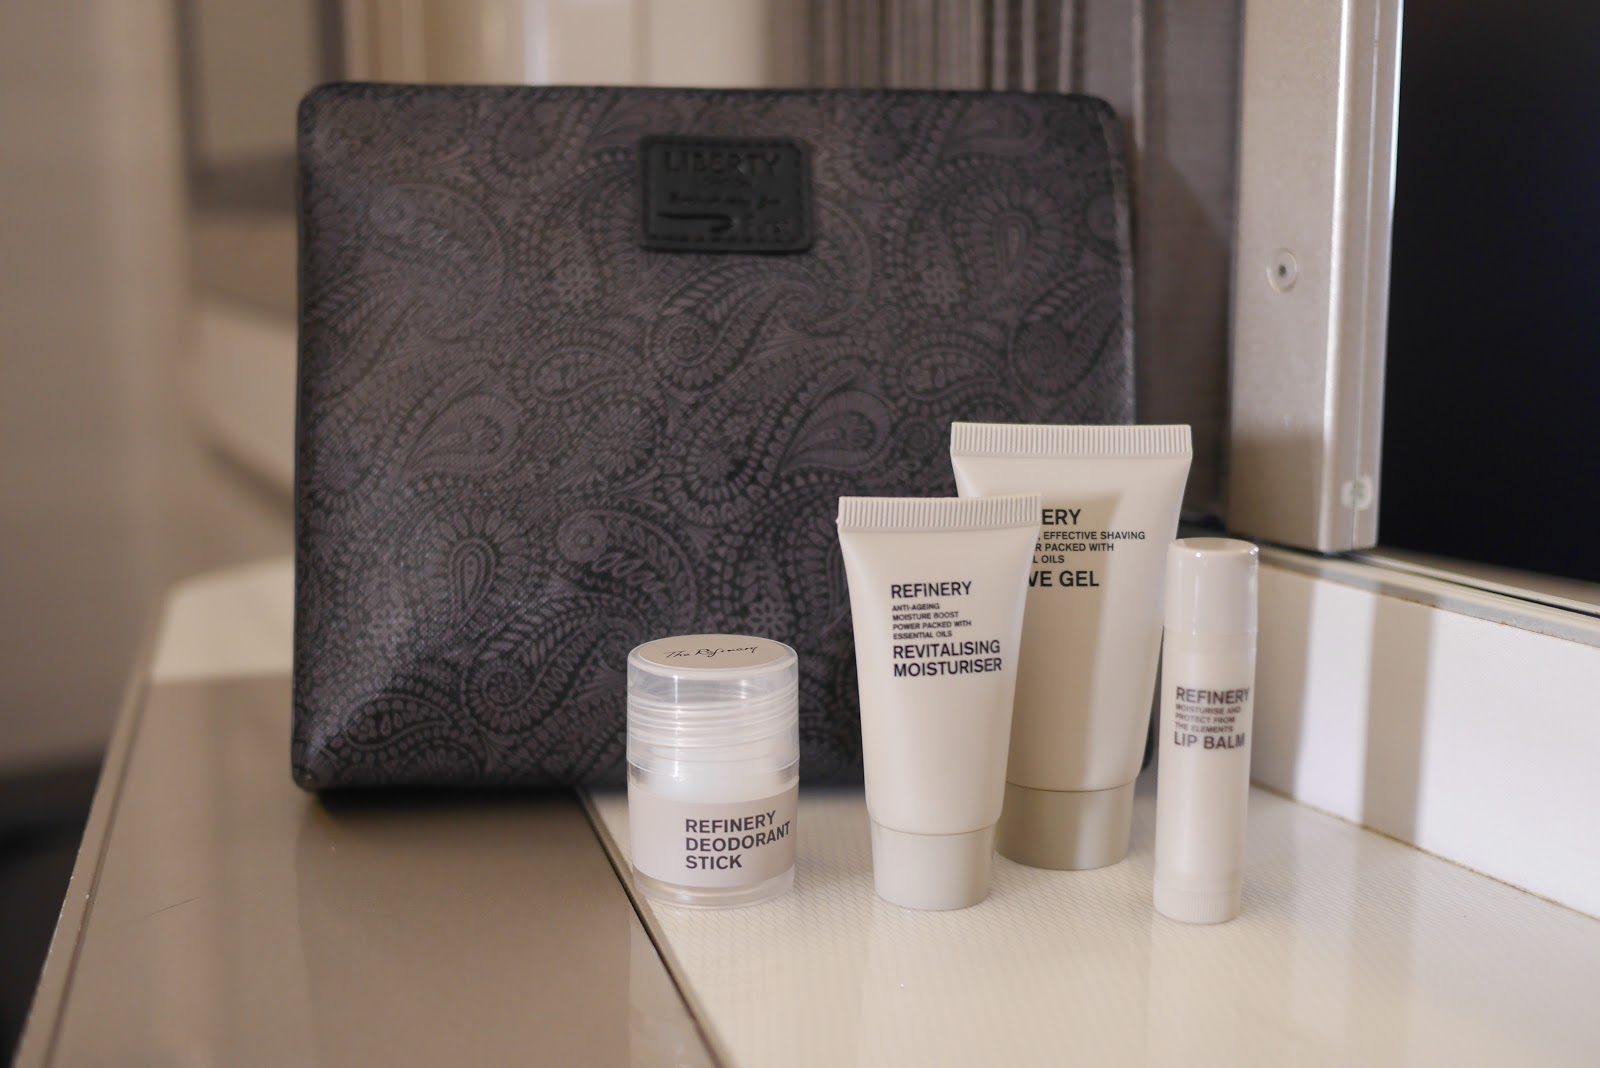 British Airways First Class, Liberty's Amenity Kit (Female & Male)